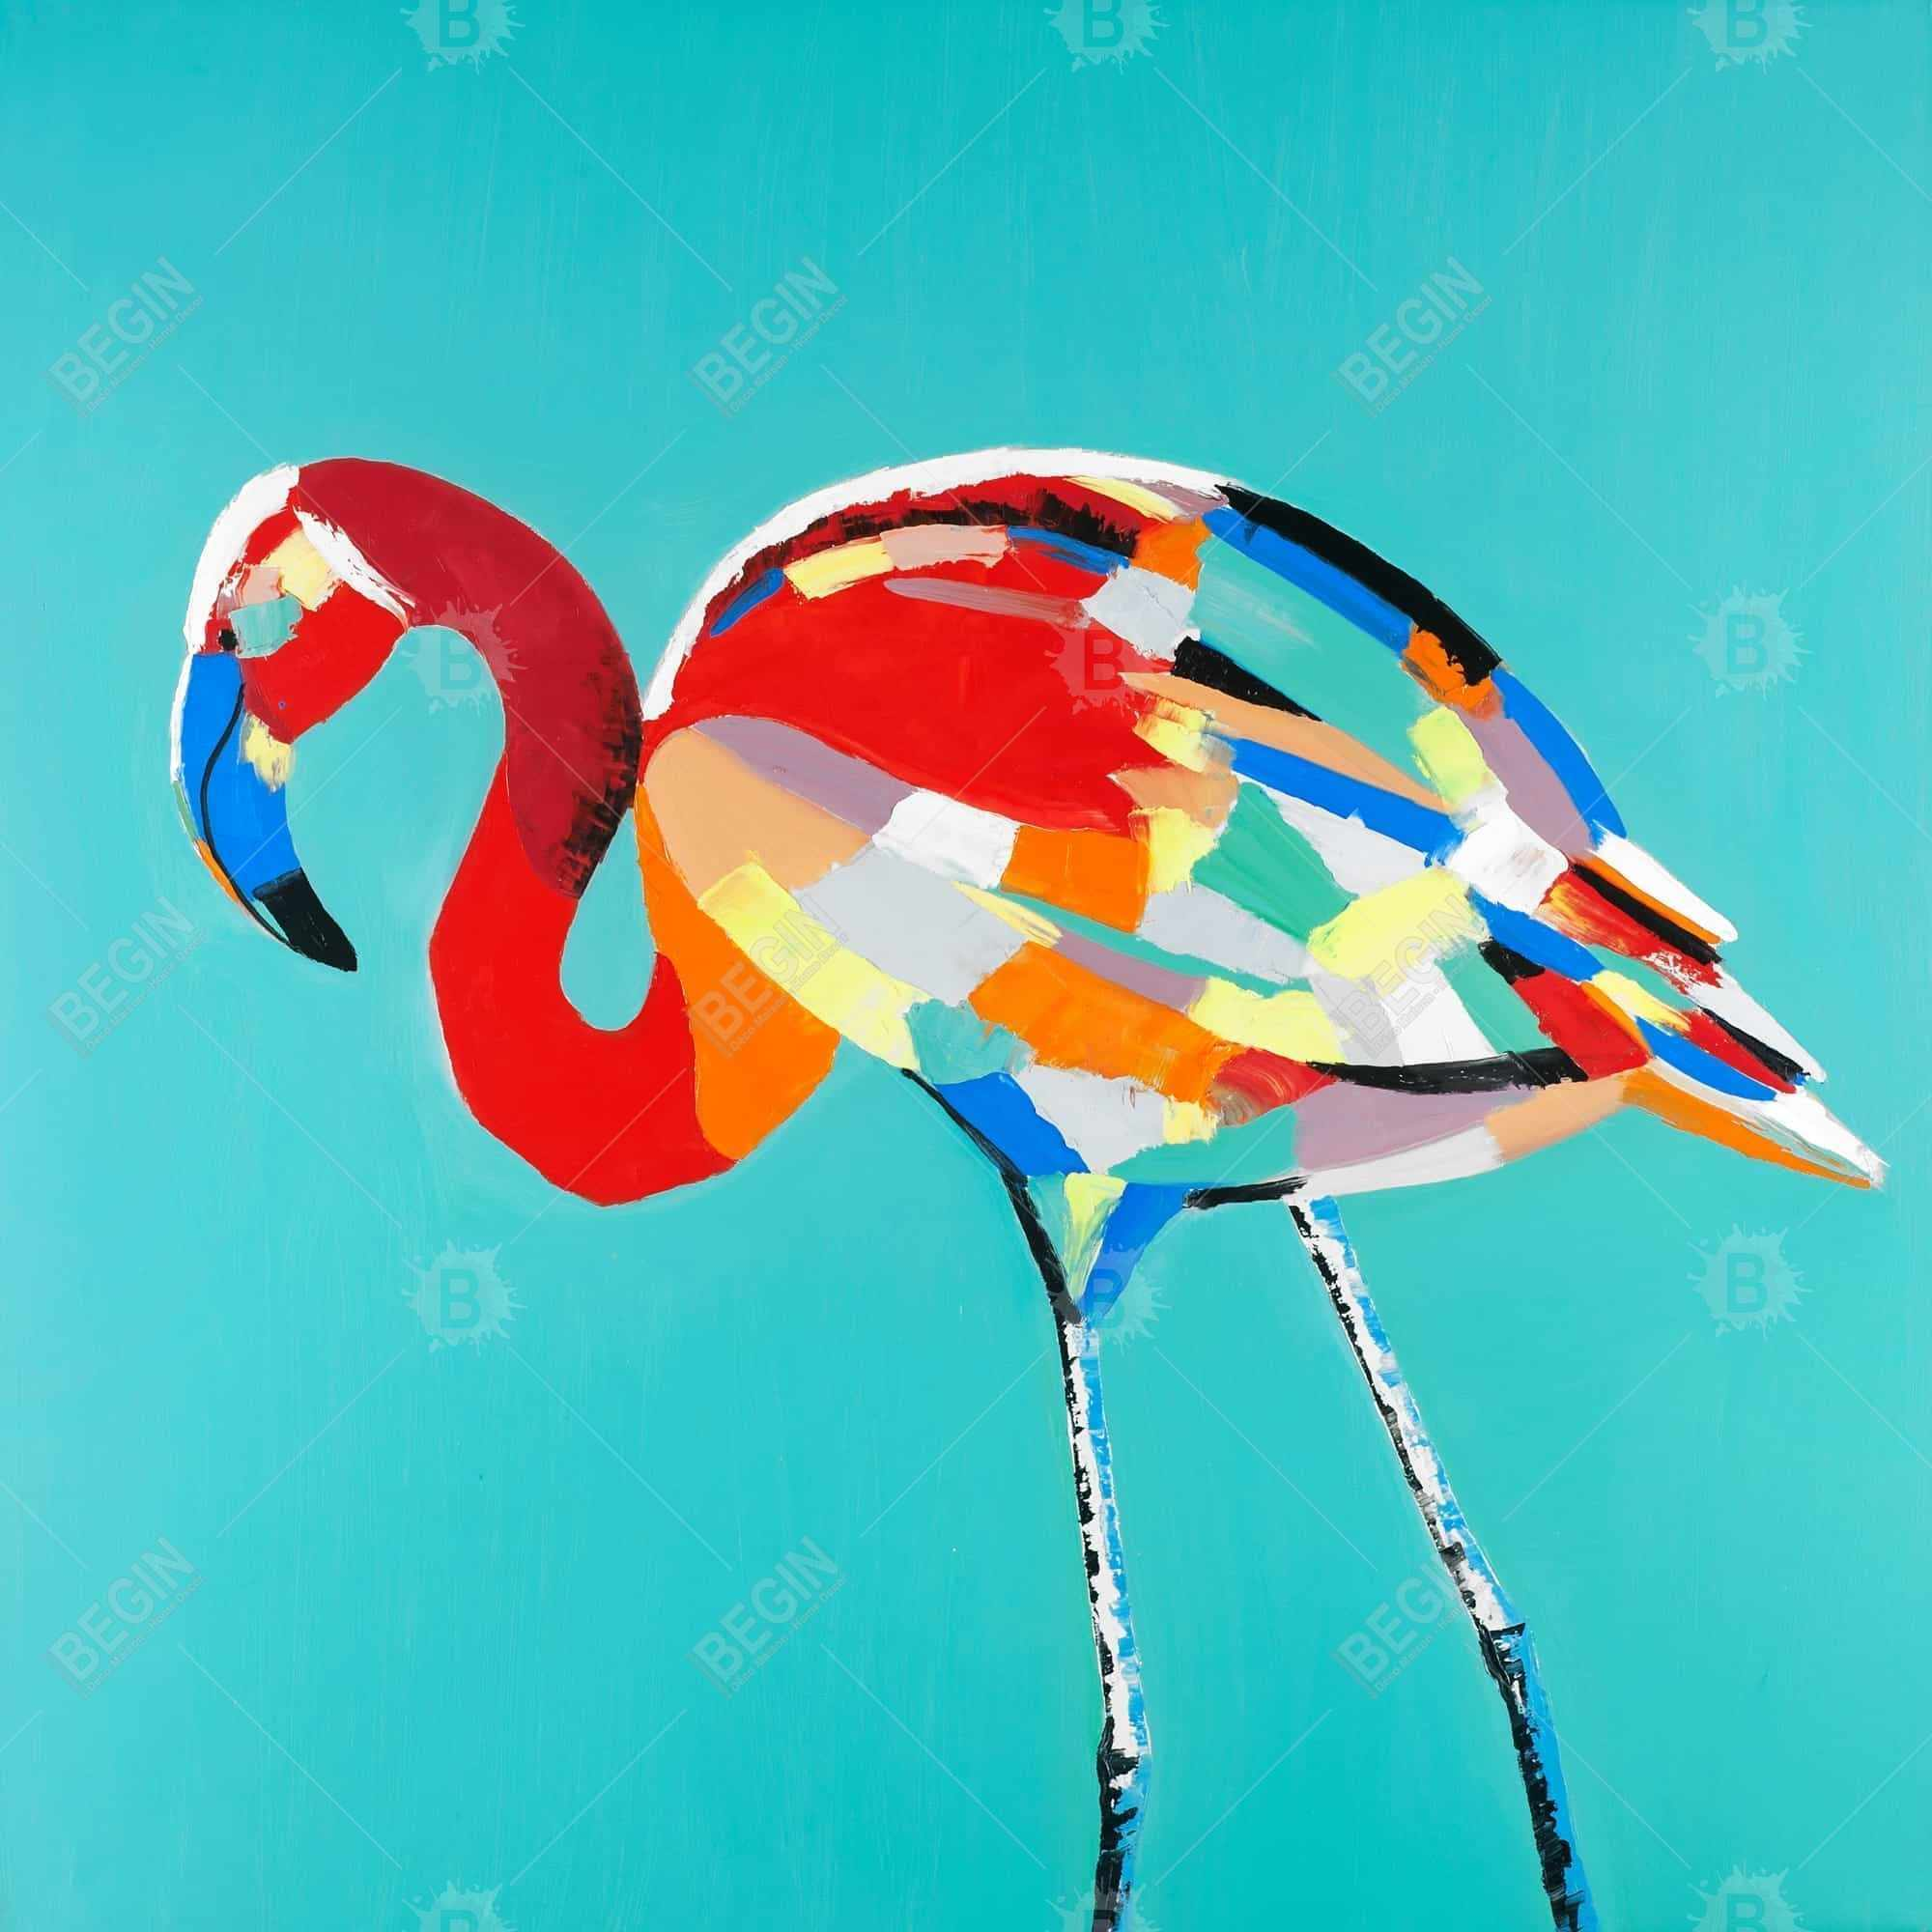 Abstract flamingo